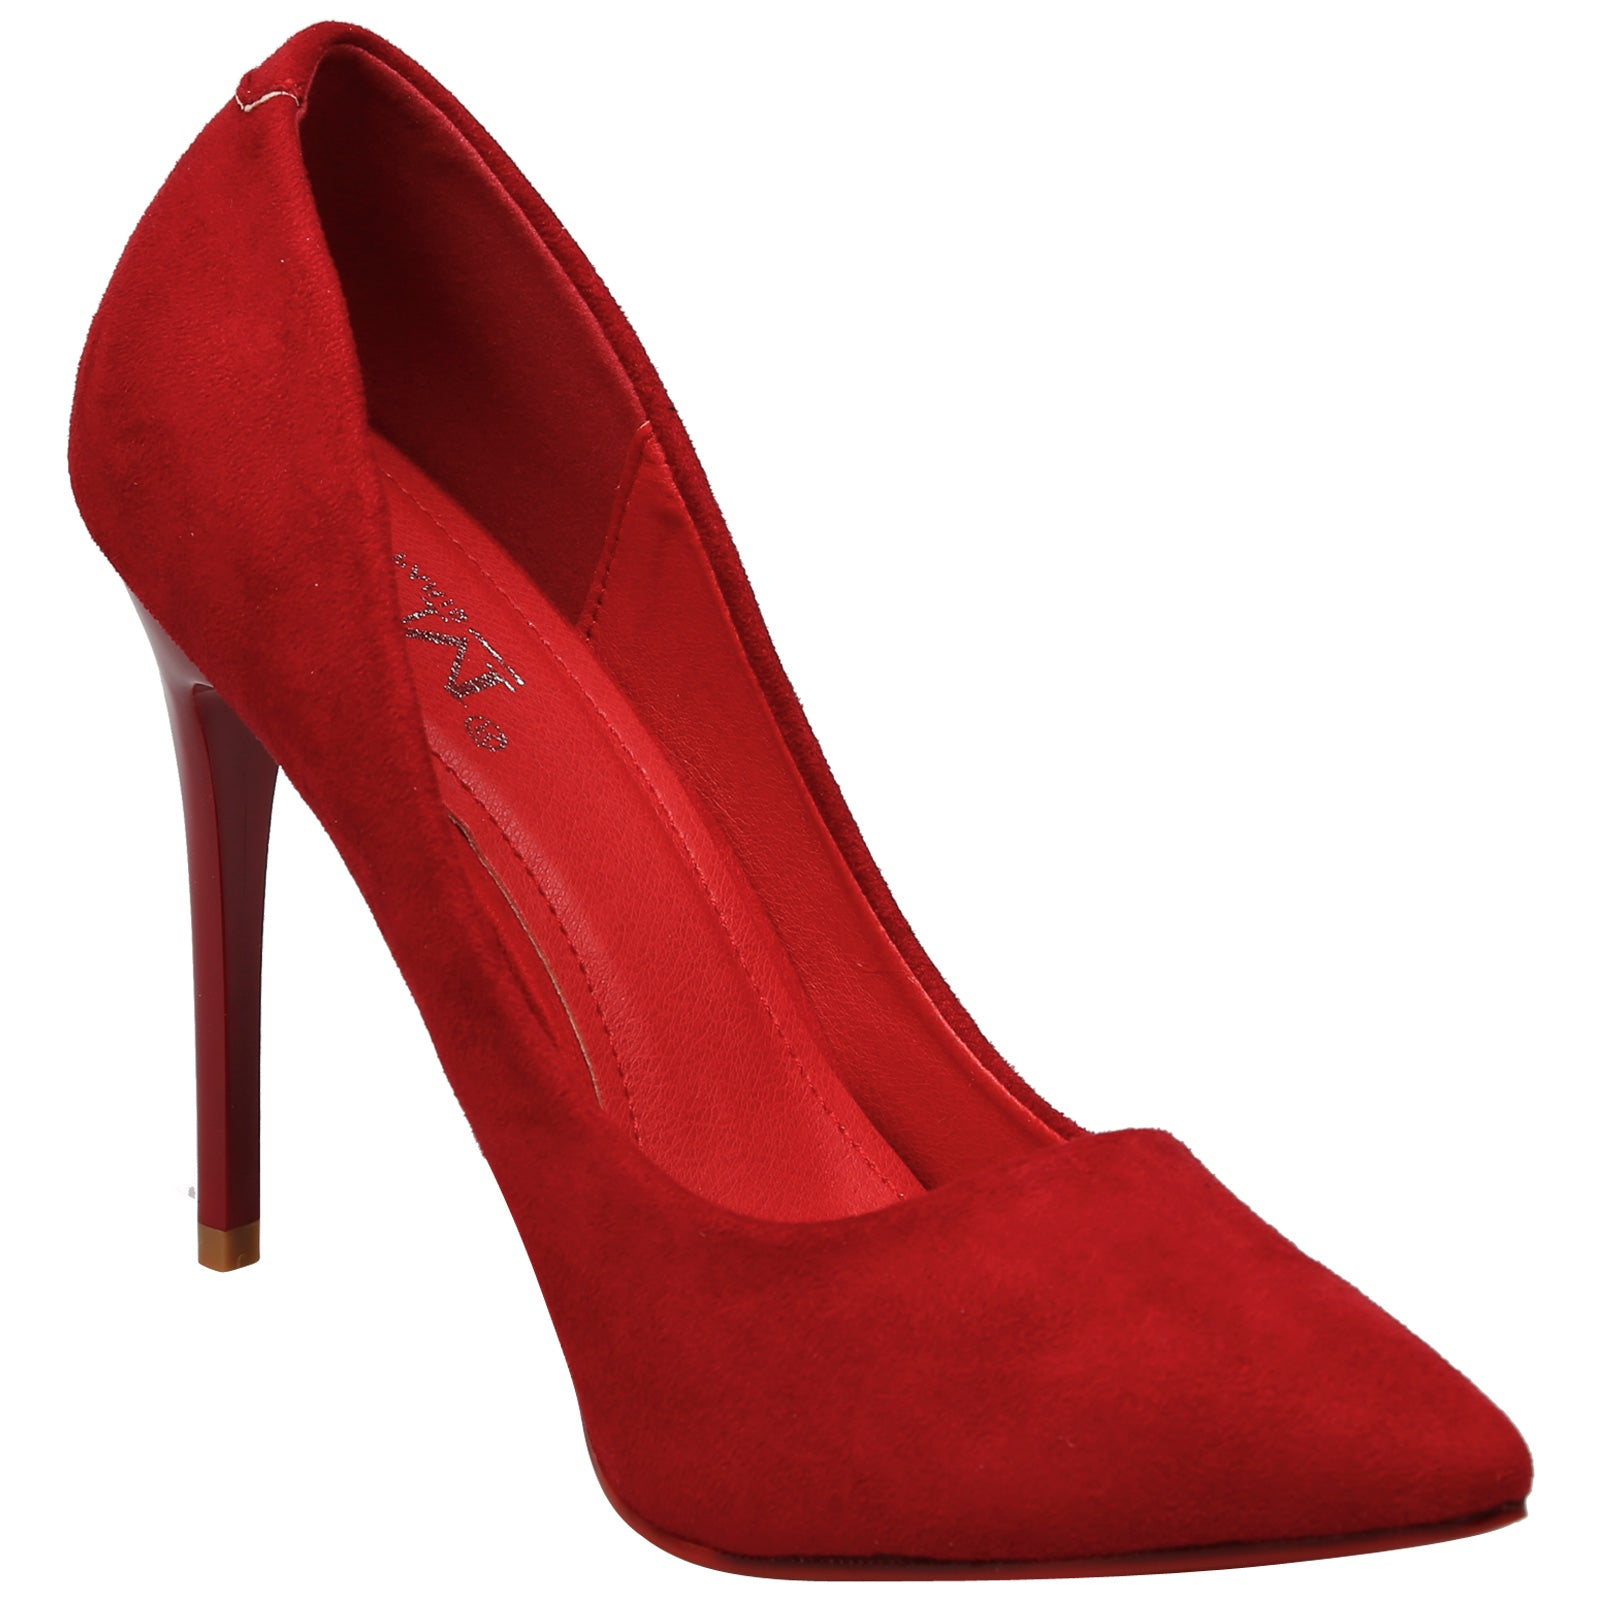 Danita Stiletto Heel Court Shoes in Red Faux Suede - Feet First Fashion